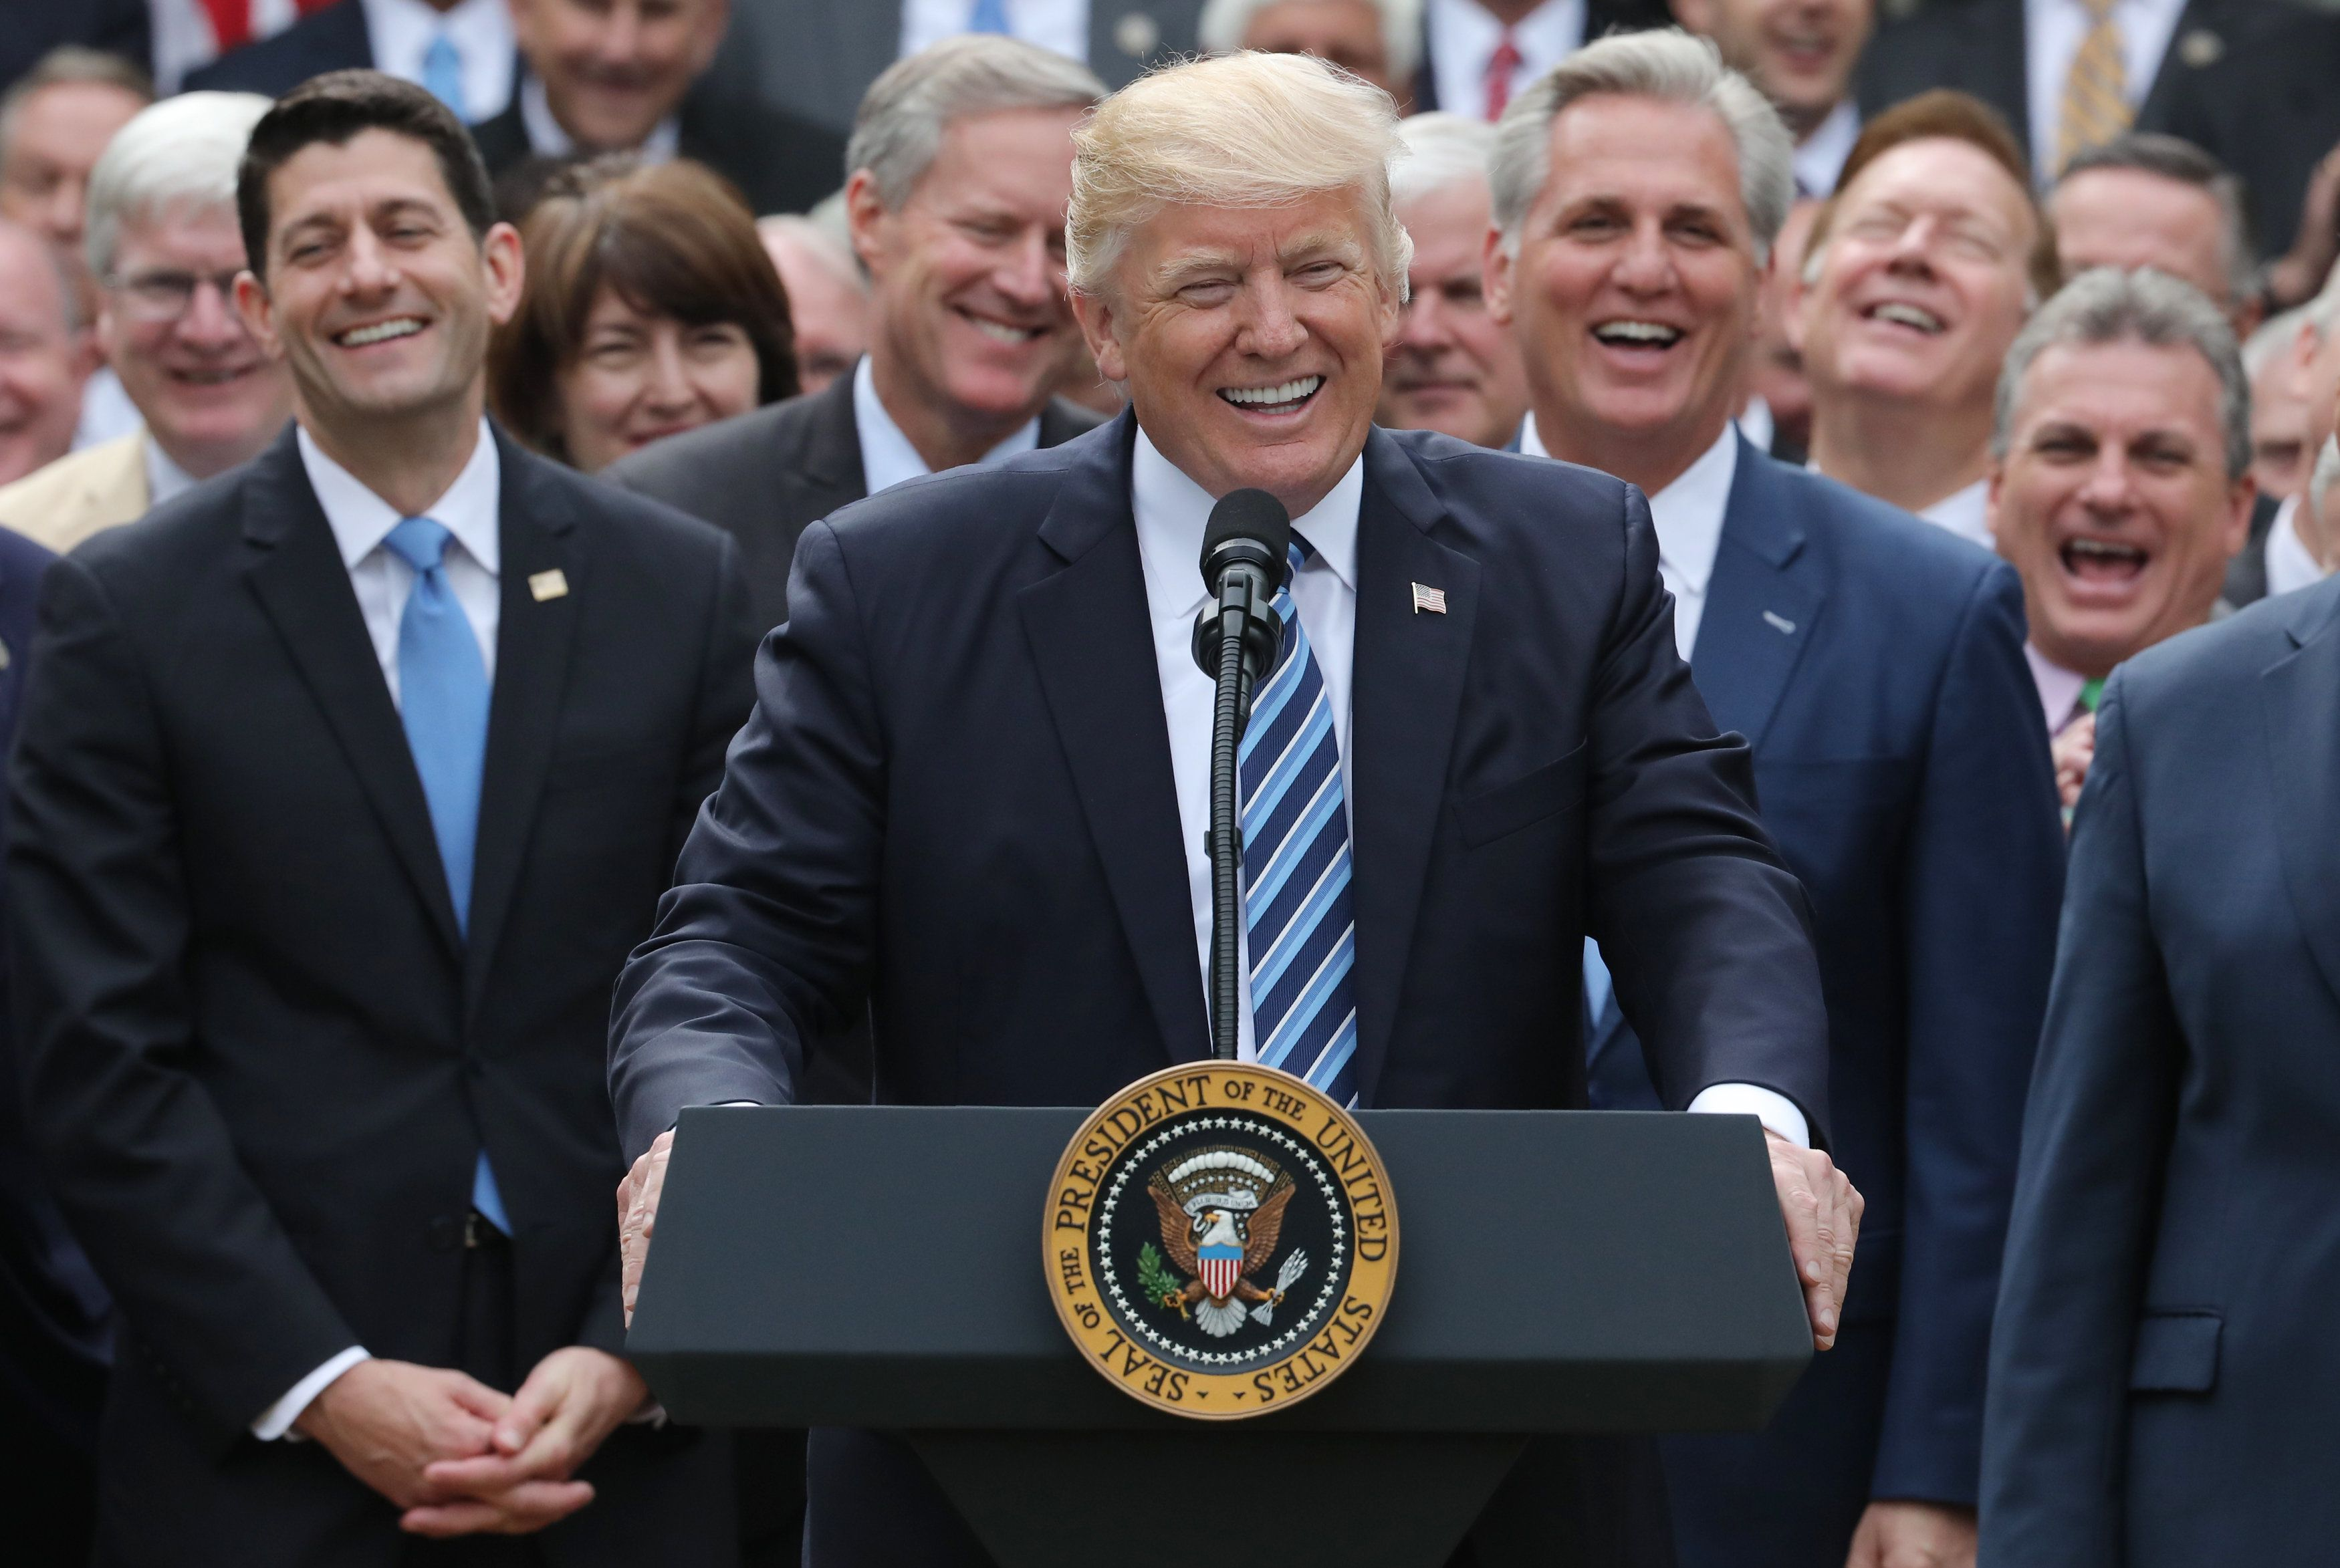 U.S. President Donald Trump (C) celebrates with Congressional Republicans in the Rose Garden of the White House after the House of Representatives approved the American Healthcare Act, to repeal major parts of Obamacare and replace it with the Republican healthcare plan, in Washington, U.S., May 4, 2017. REUTERS/Carlos Barria  TPX IMAGES OF THE DAY